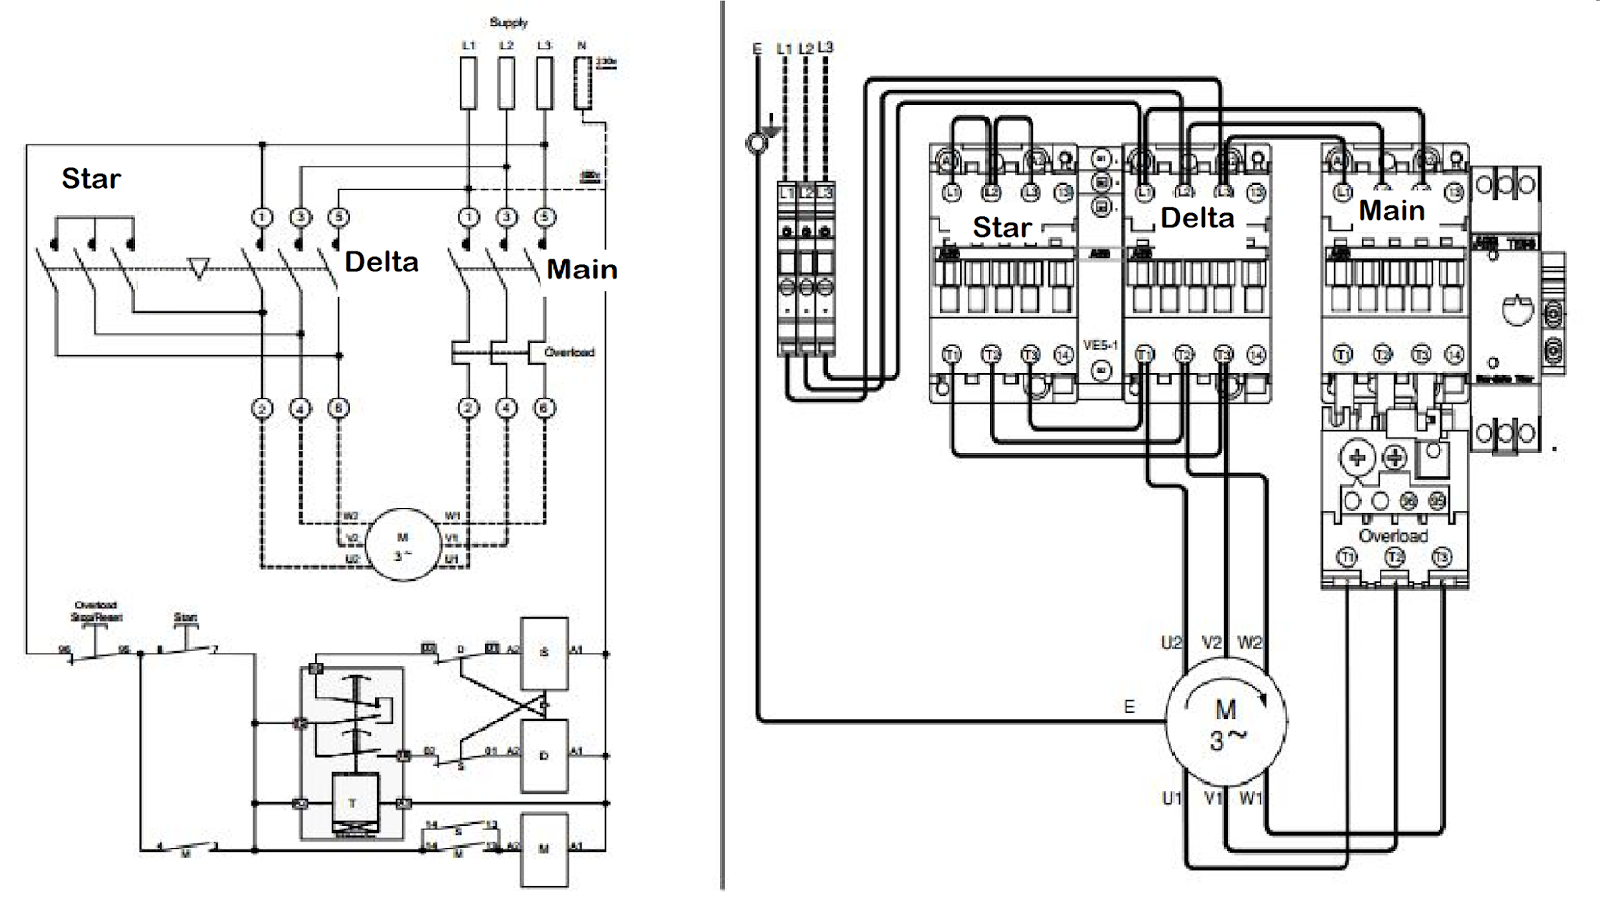 wiring diagram for forward reverse single phase motor with This Is Important The Wiring Diagram Shown On on Reversing The Rotation Of A Three Phase Induction Motor Wiring Diagram 3 Phase Motor 9 Leads 21 in addition Dc Contactor Wiring also Wiring Diagram Dol Starter Single Phase furthermore Lambretta Wiring Diagram With Indicators moreover 110v Light Wiring Diagram.